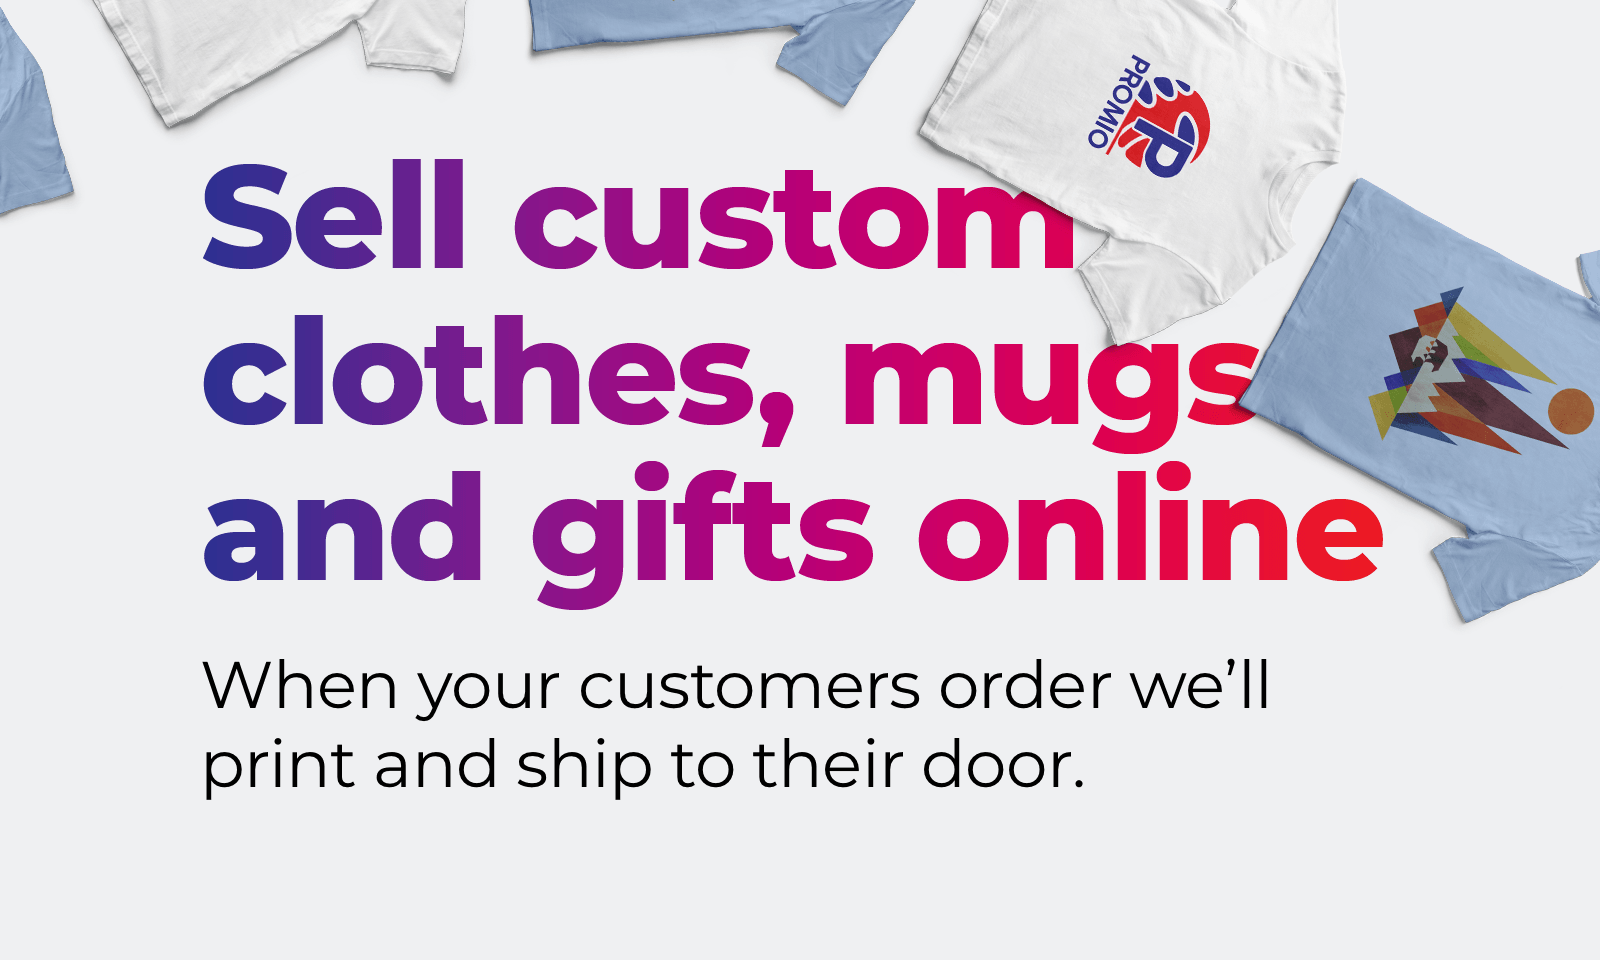 Sell custom clothes, mugs and gifts online - How it works